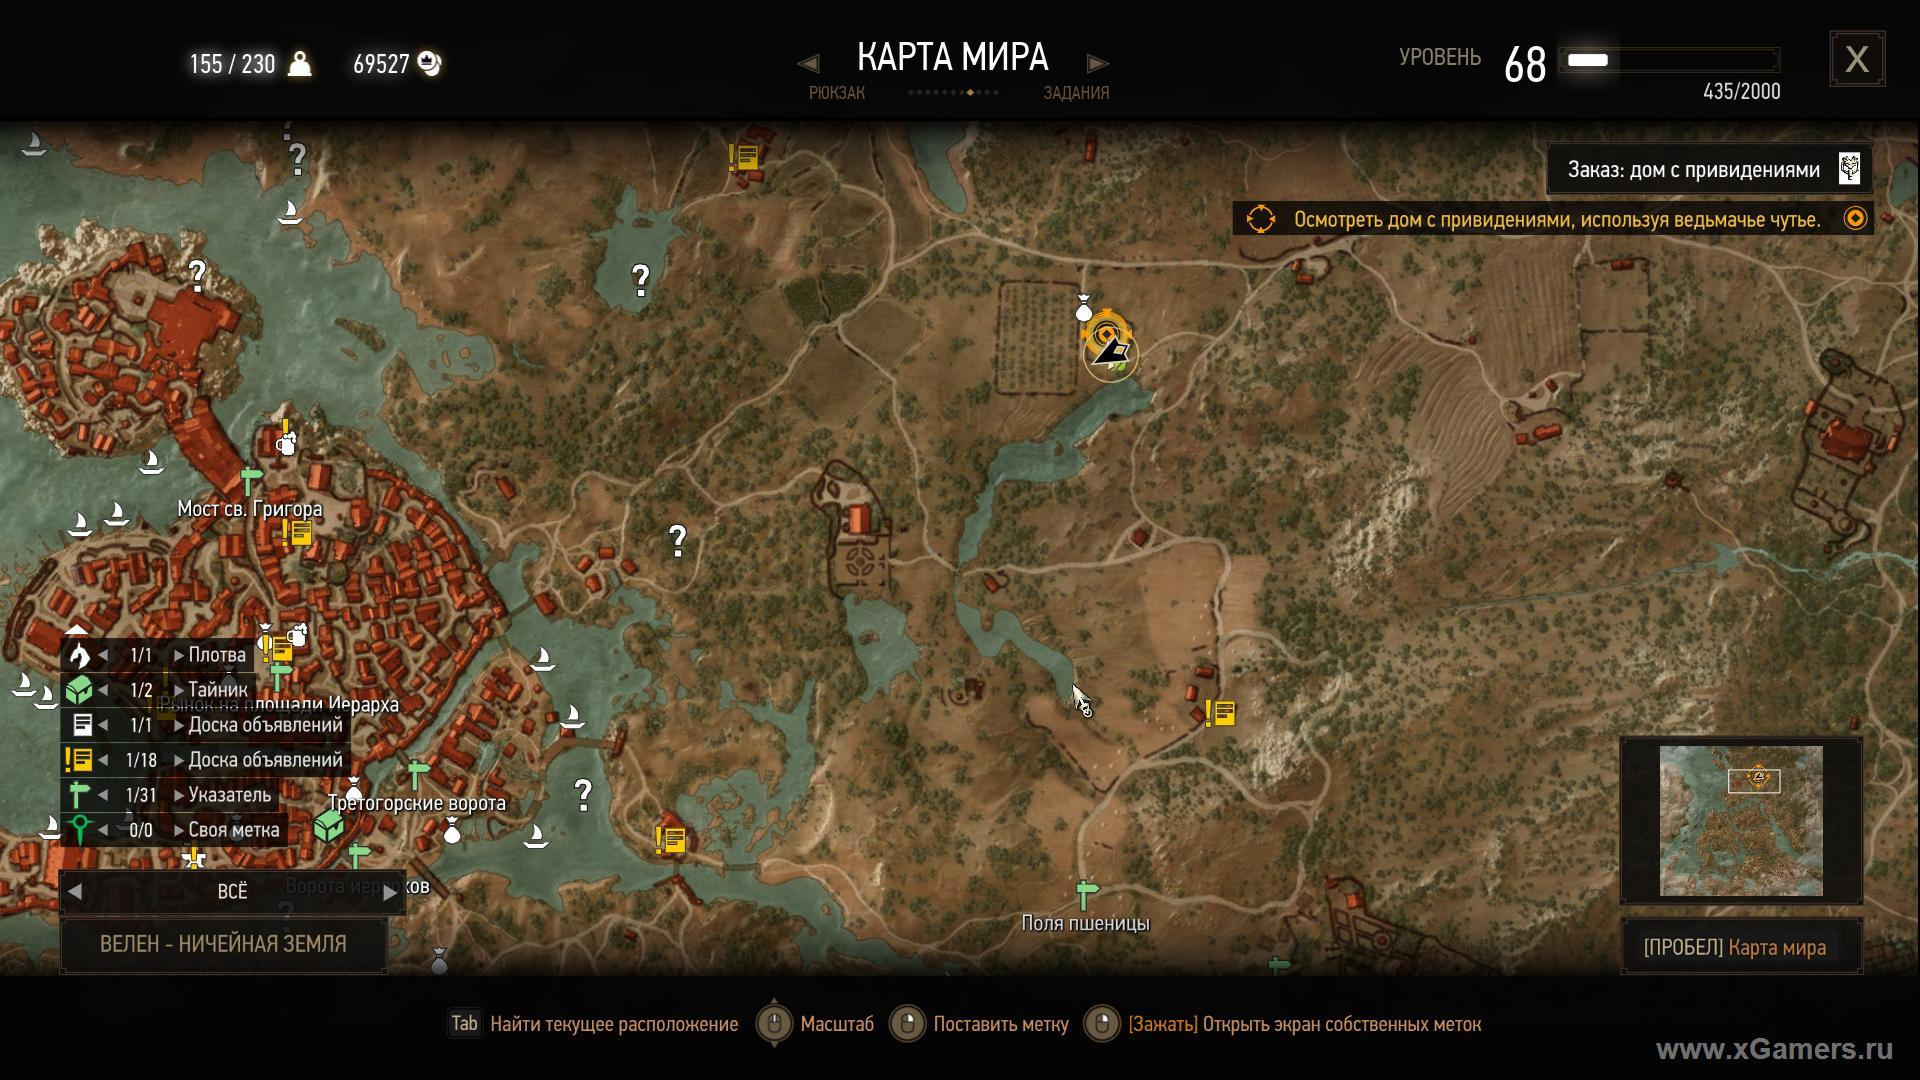 Moldavi Manor location on the map - The Witcher 3